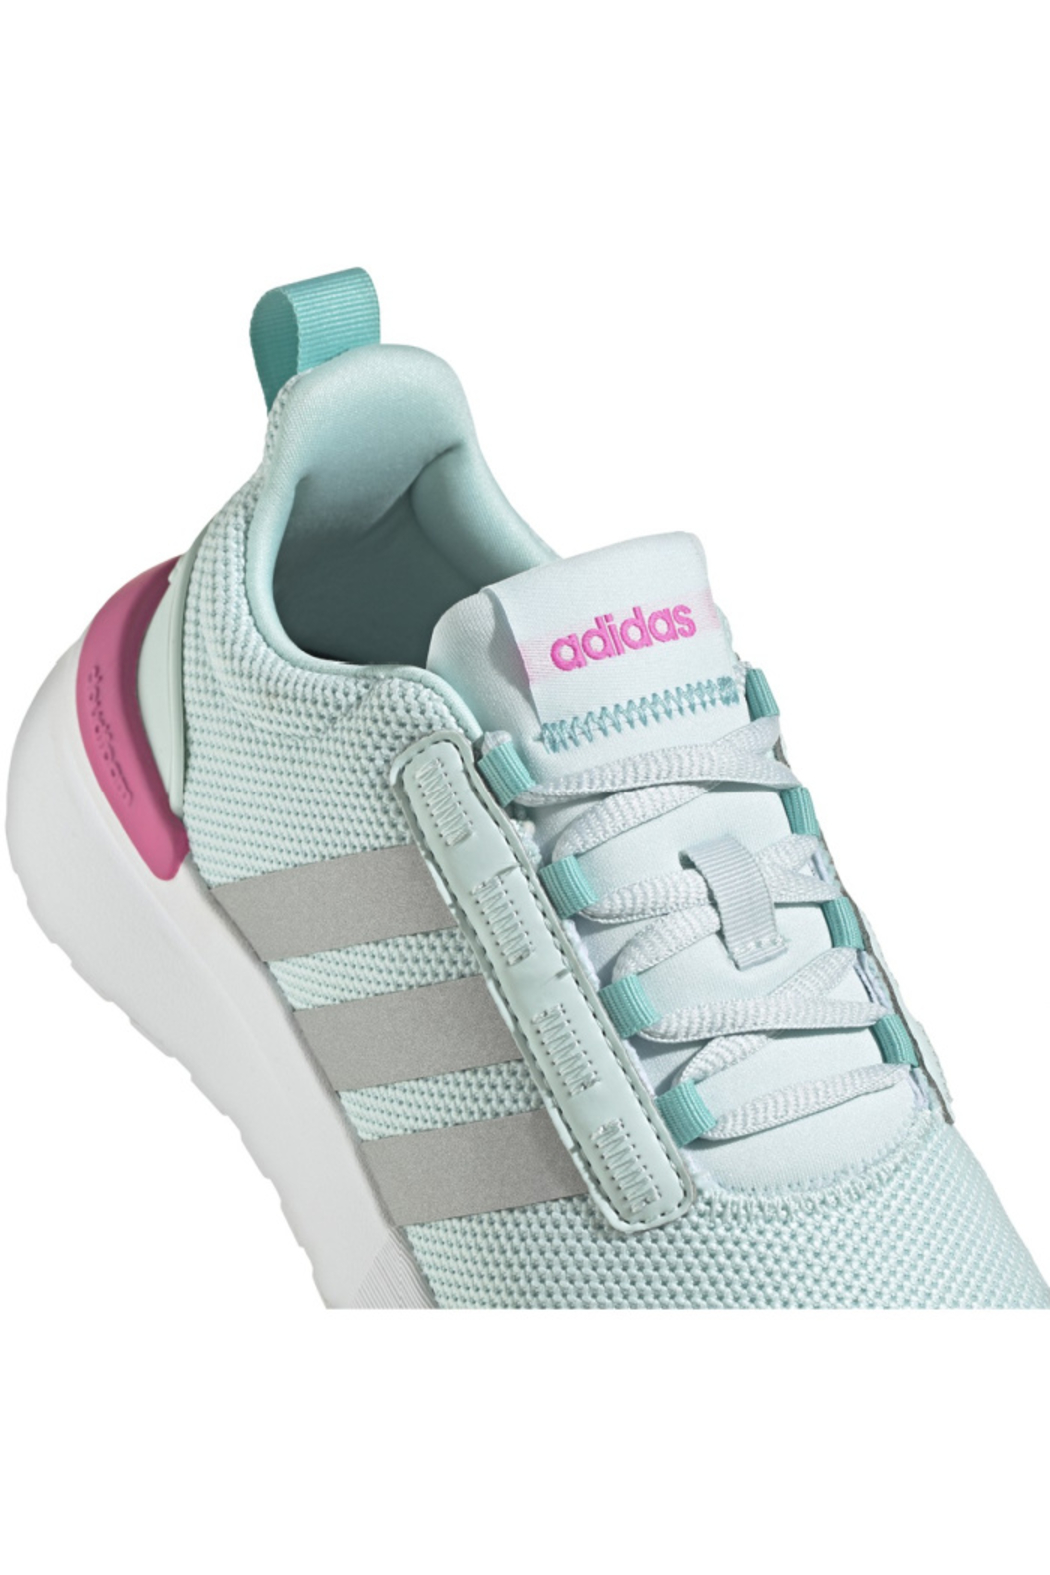 adidas Adidas Girls Racer TR21K in HALO MINT/SILVER MET./SCREAMING PINK - Back Cropped Image